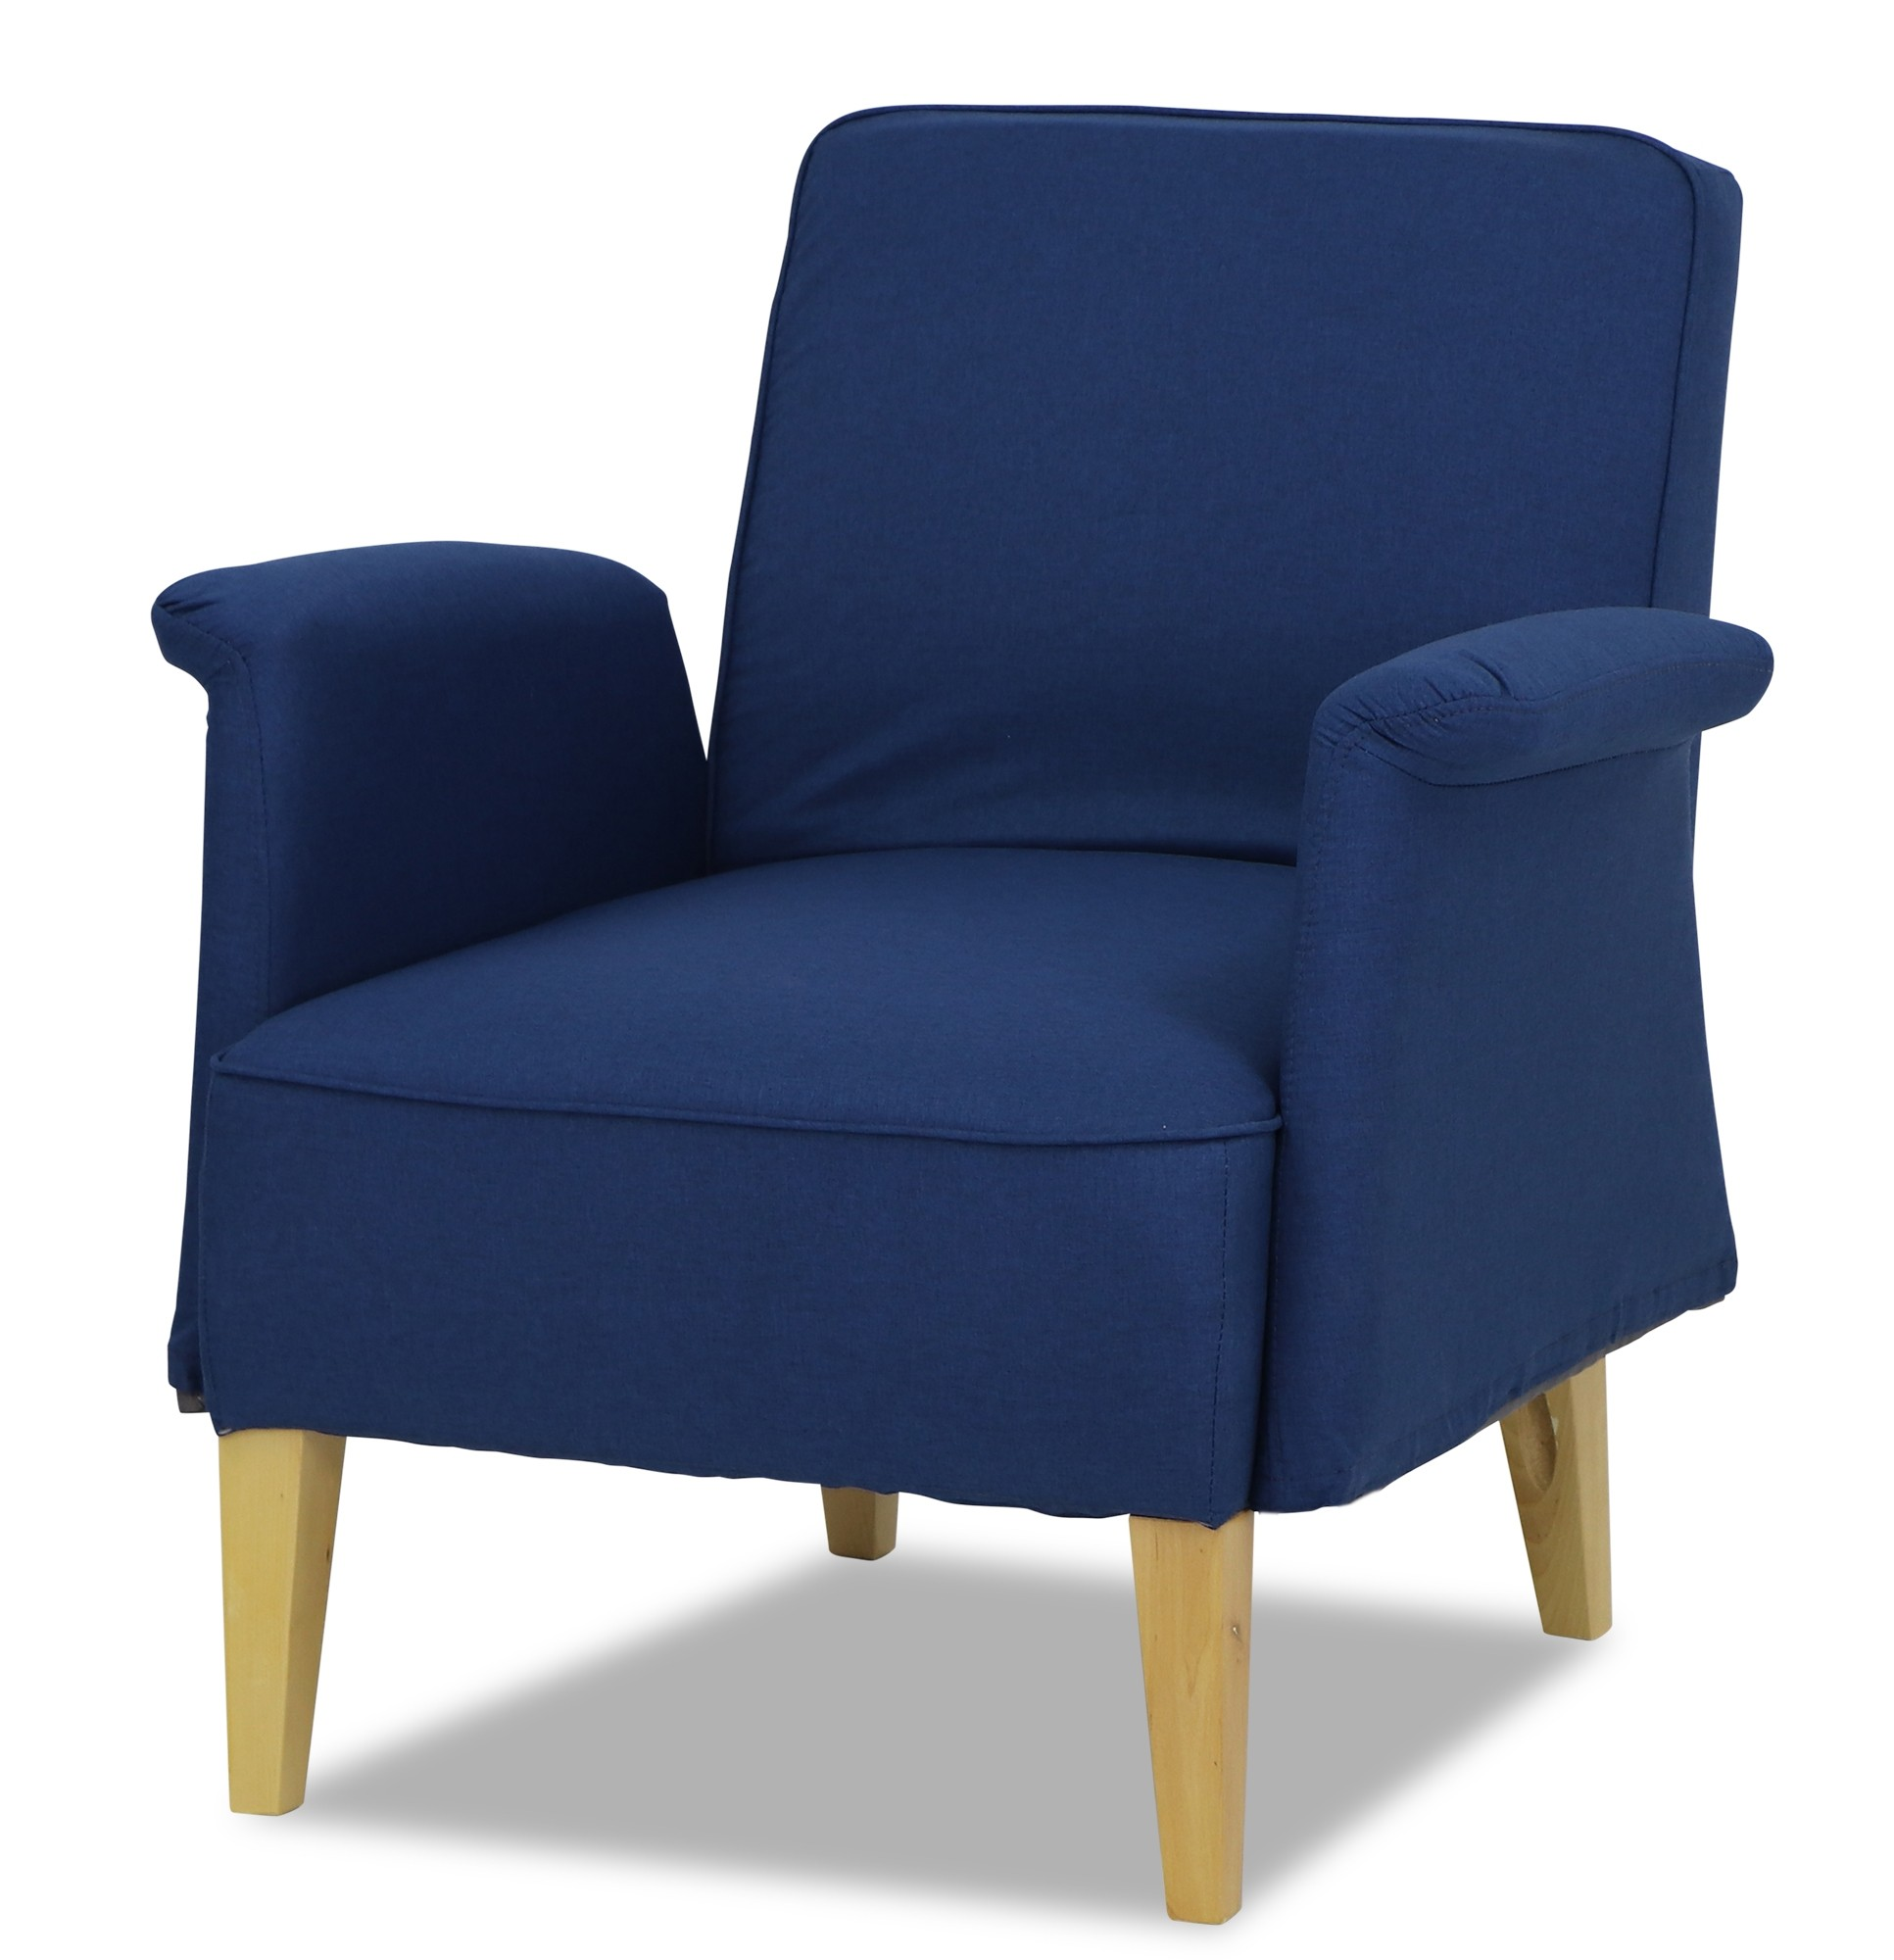 Armchairs & Accent Chairs Marzena Arm Chair In Midnight Blue Armchairs And Accent